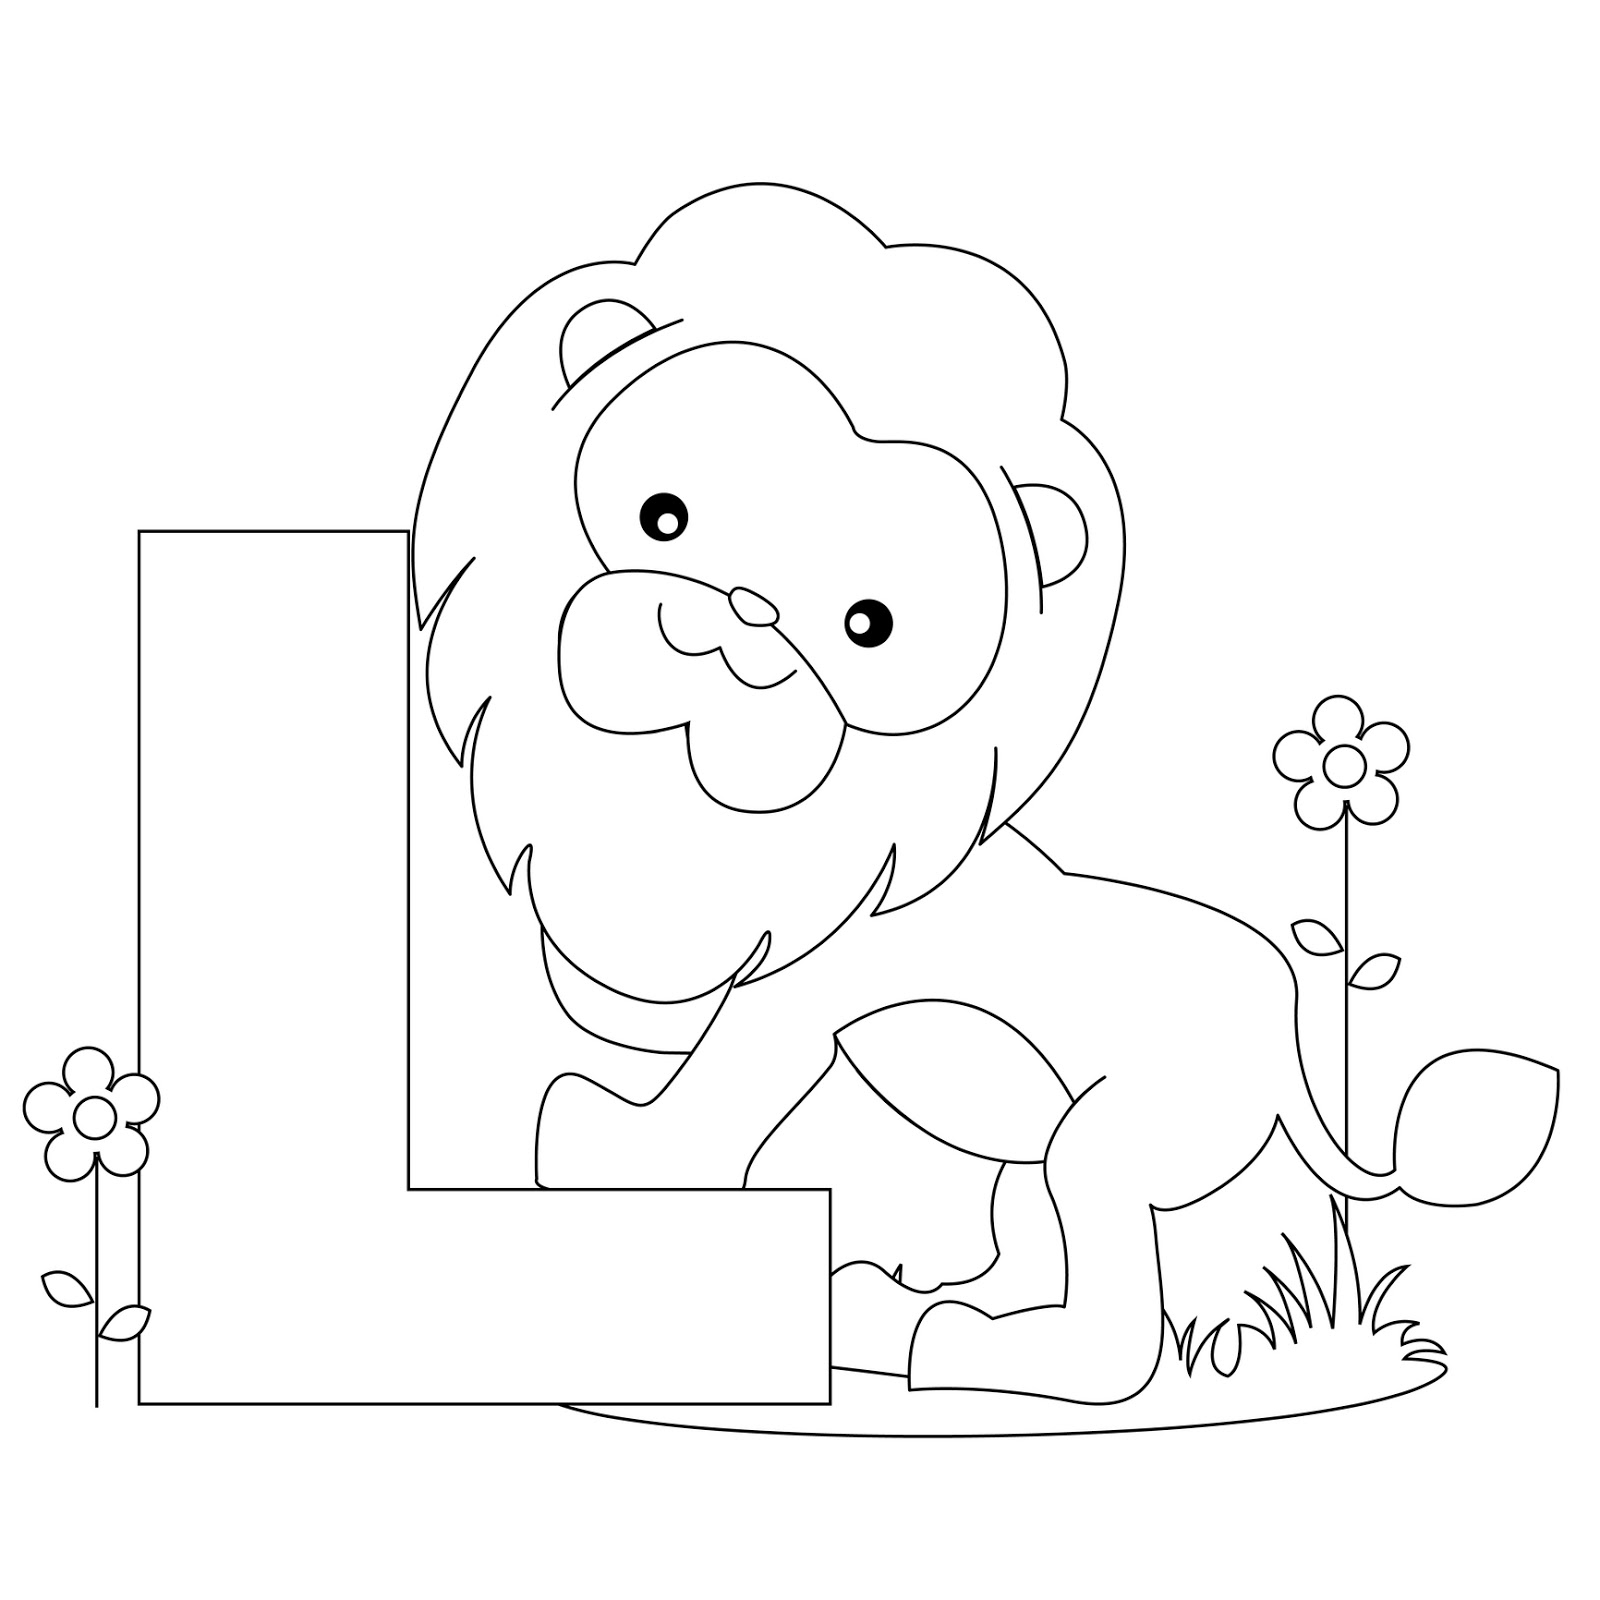 coloring preschool letters get this alphabet coloring pages for kindergarten students letters preschool coloring